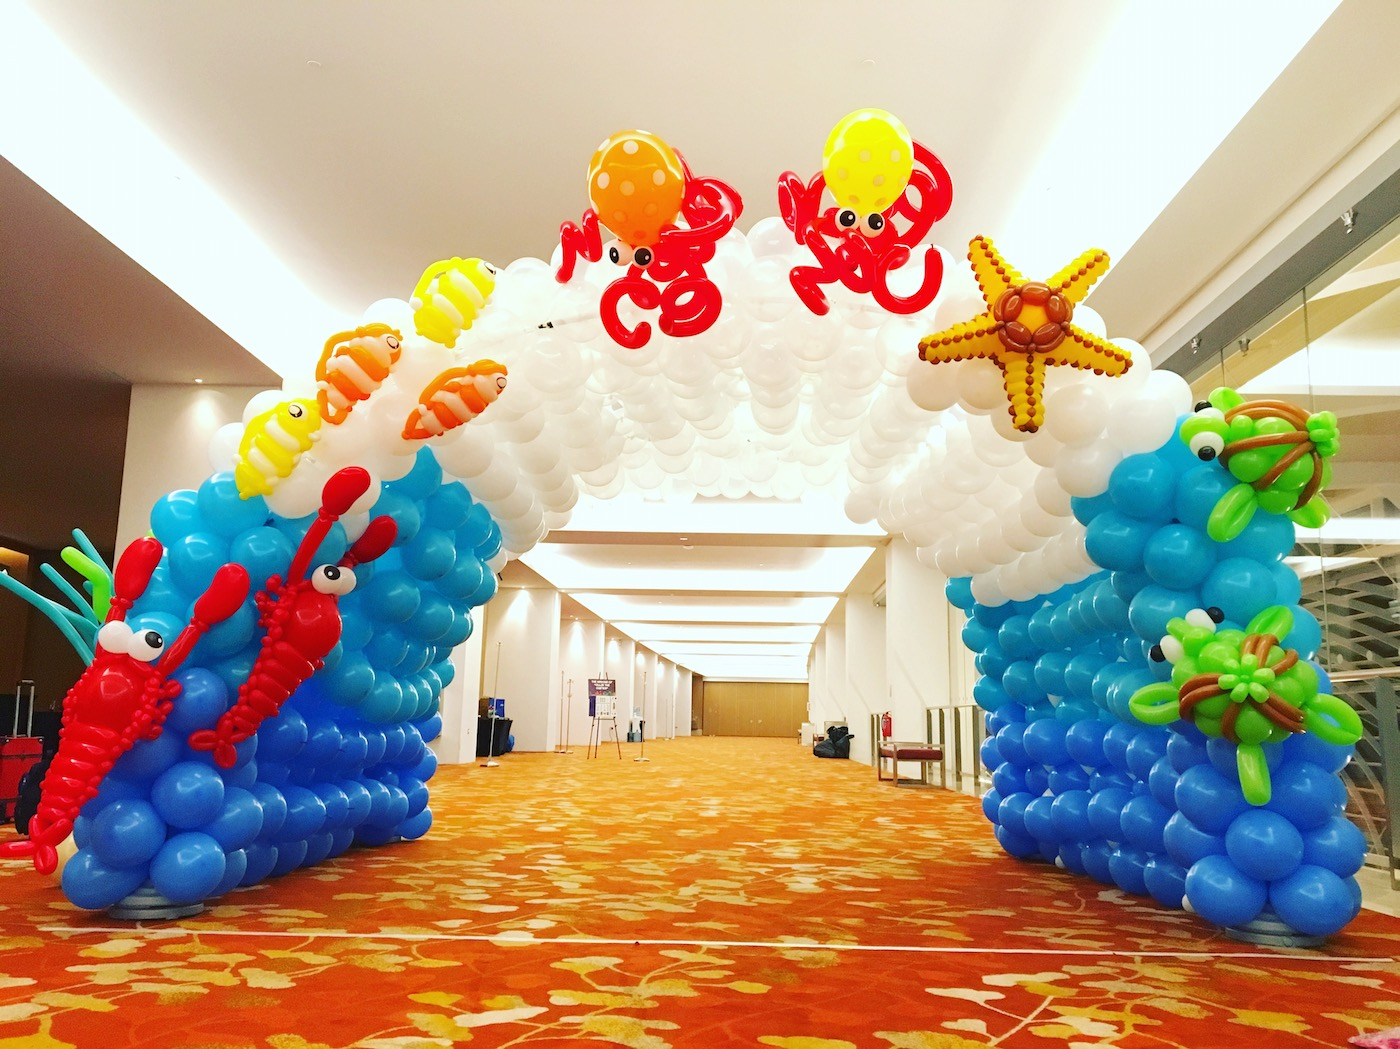 Underwater balloon tunnel decoration that balloons